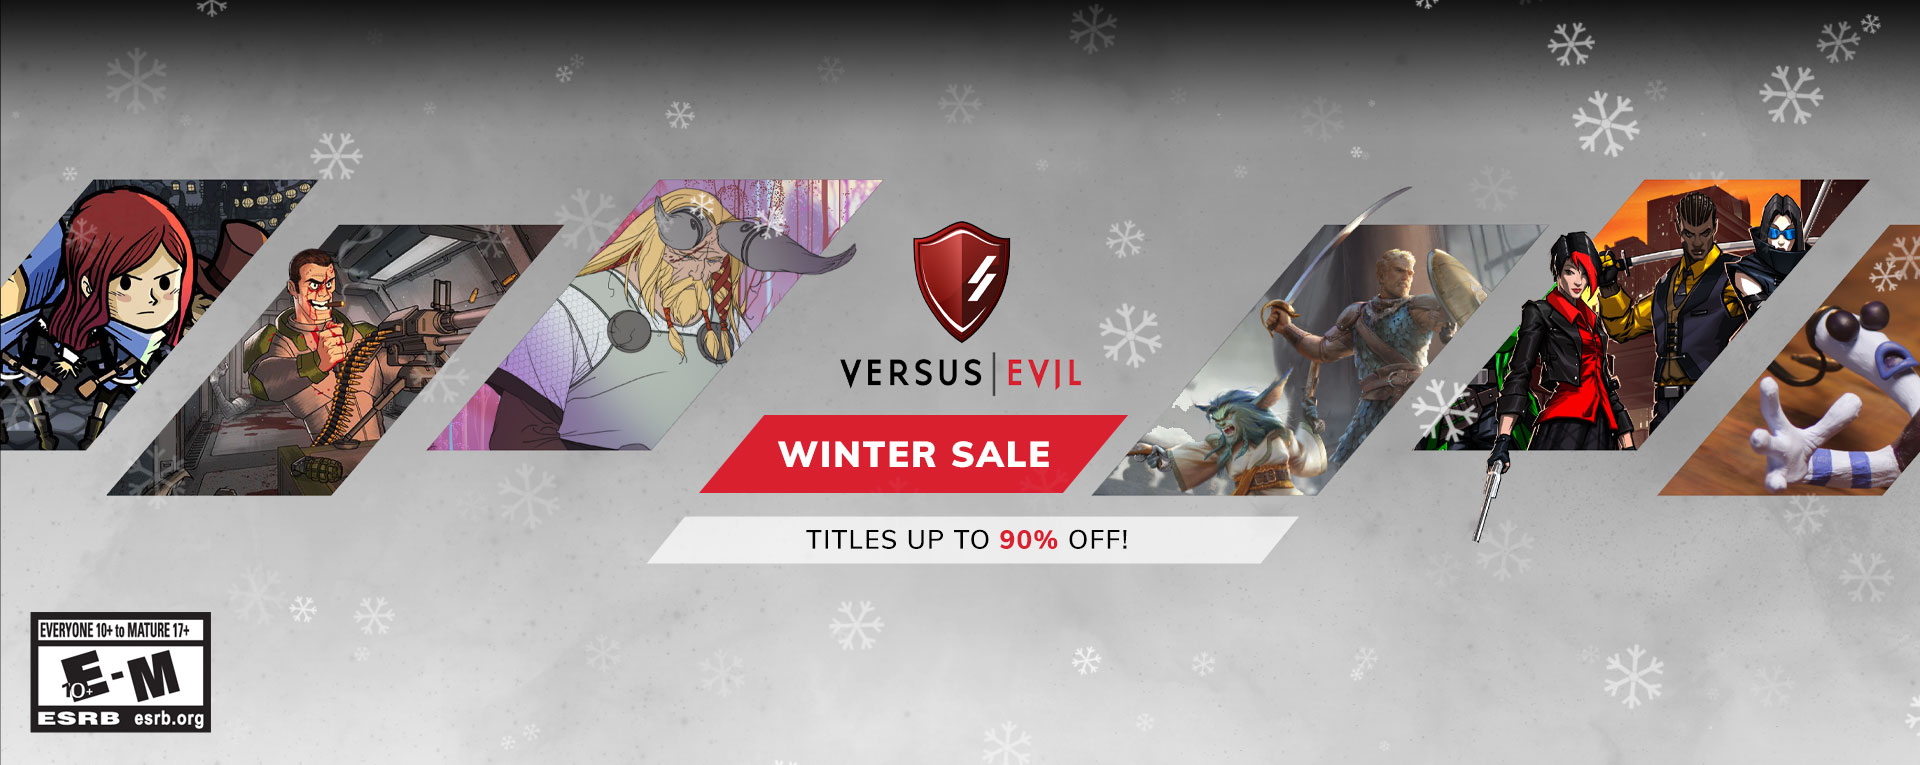 Versus Evil Winter Sale 2018